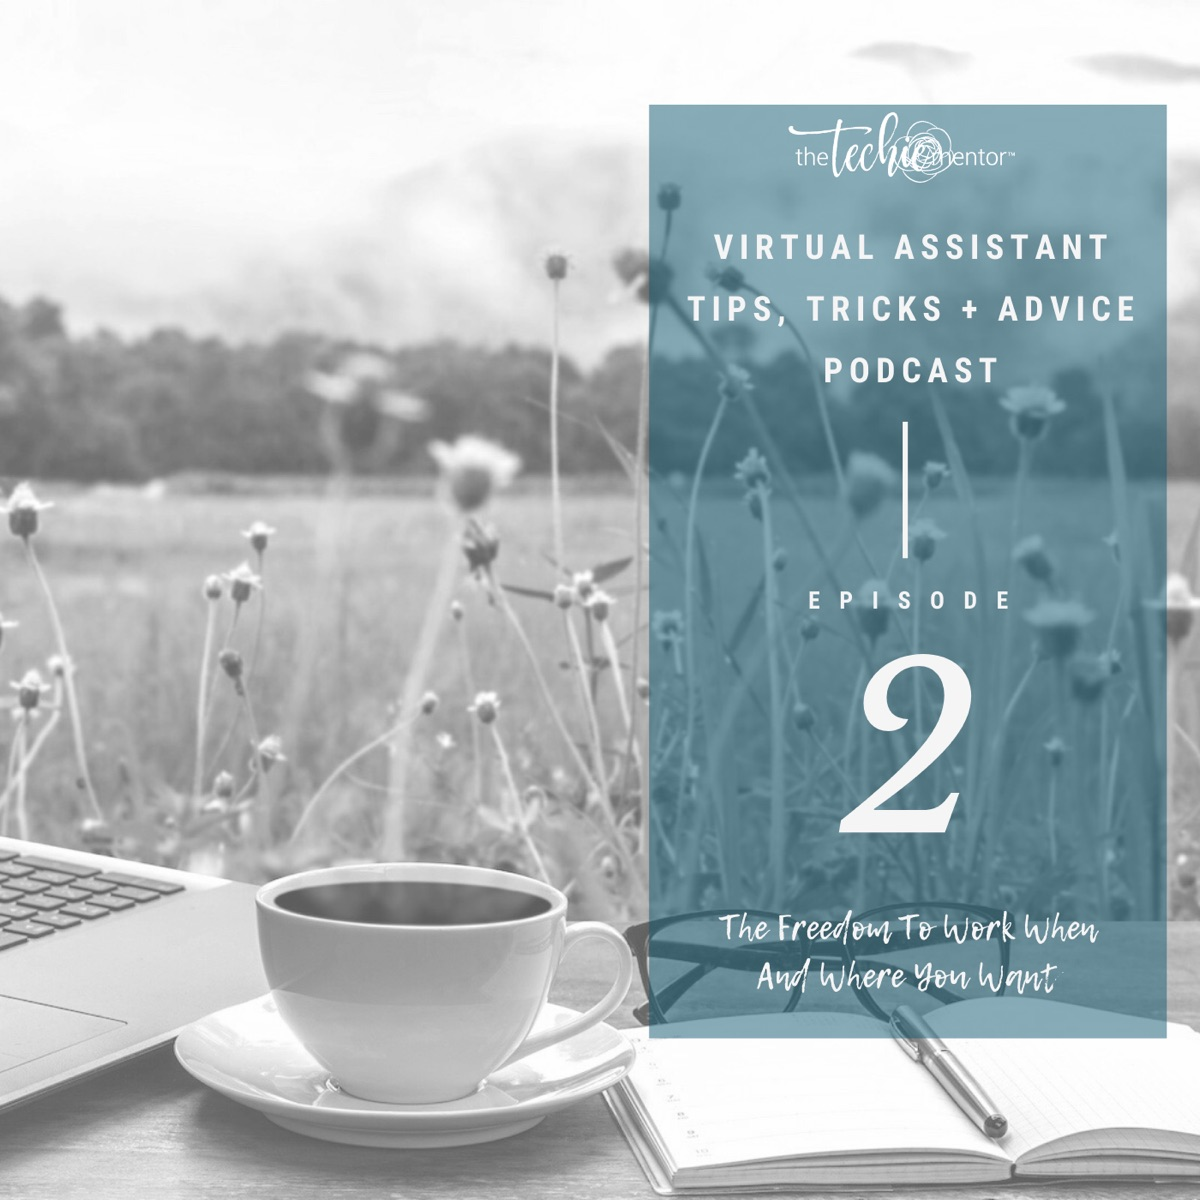 The Virtual Assistant Tips, Tricks + Advice Podcast